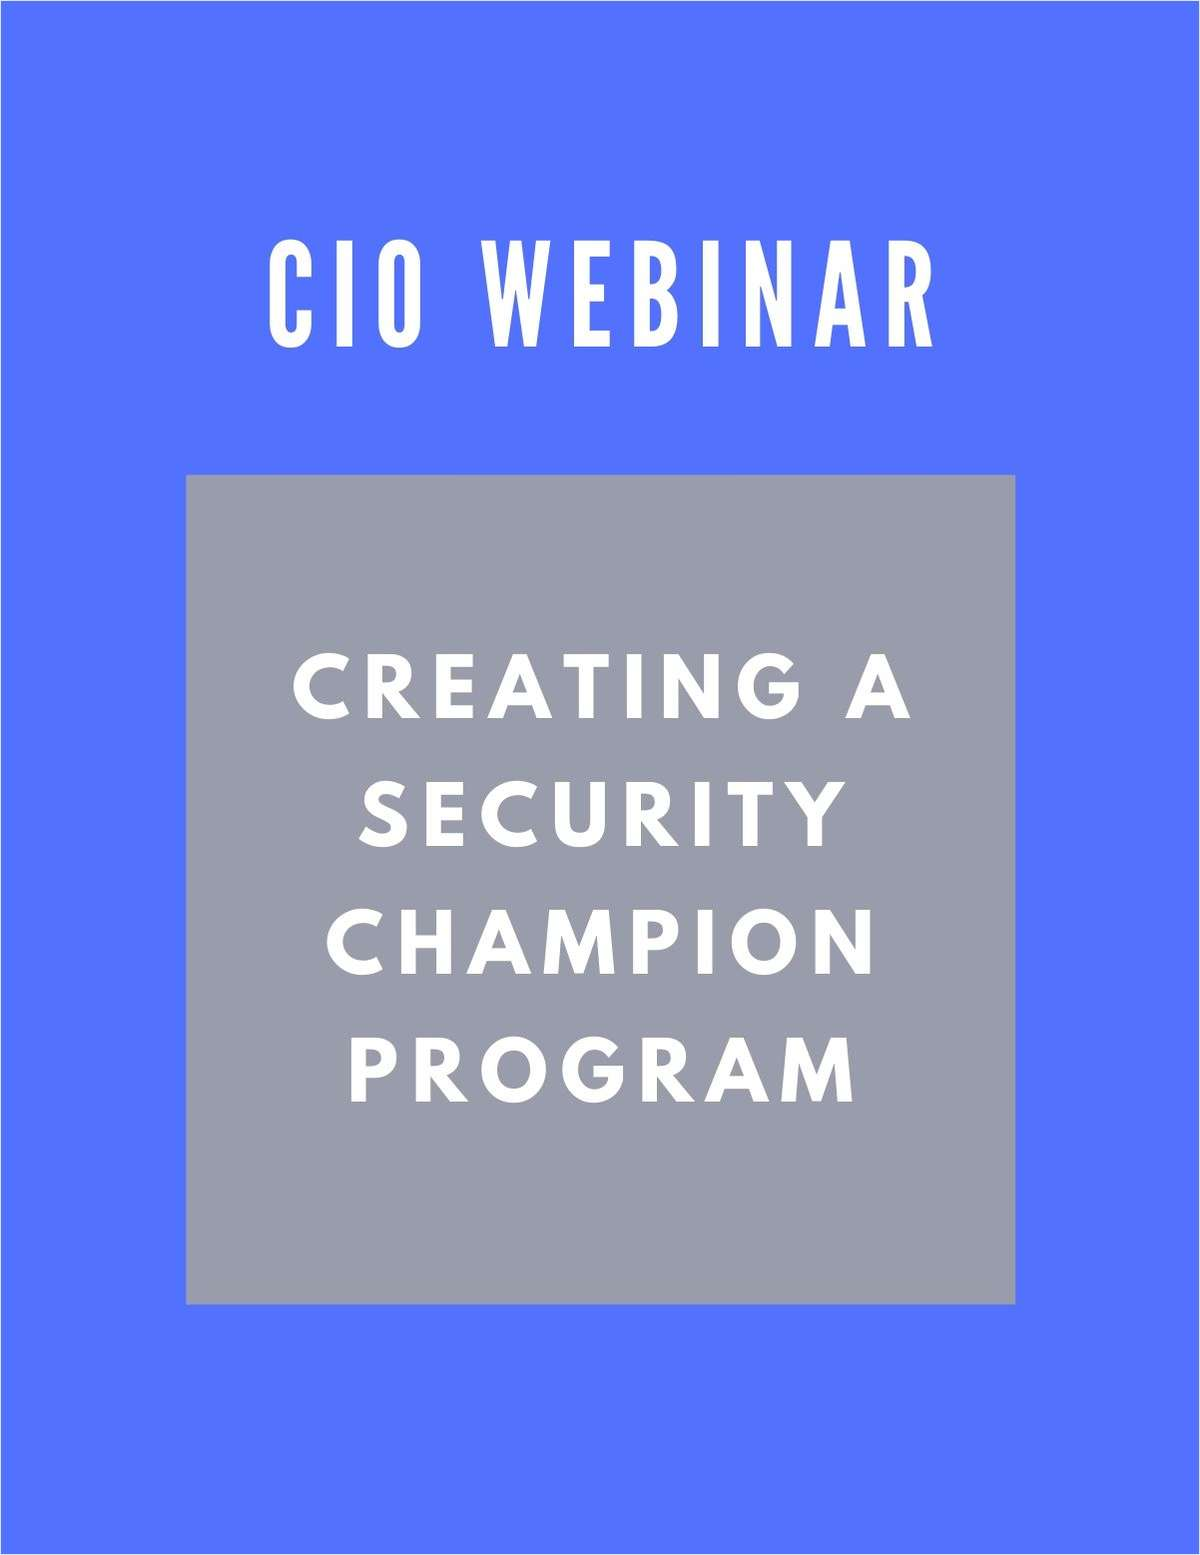 Creating a Security Champion Program